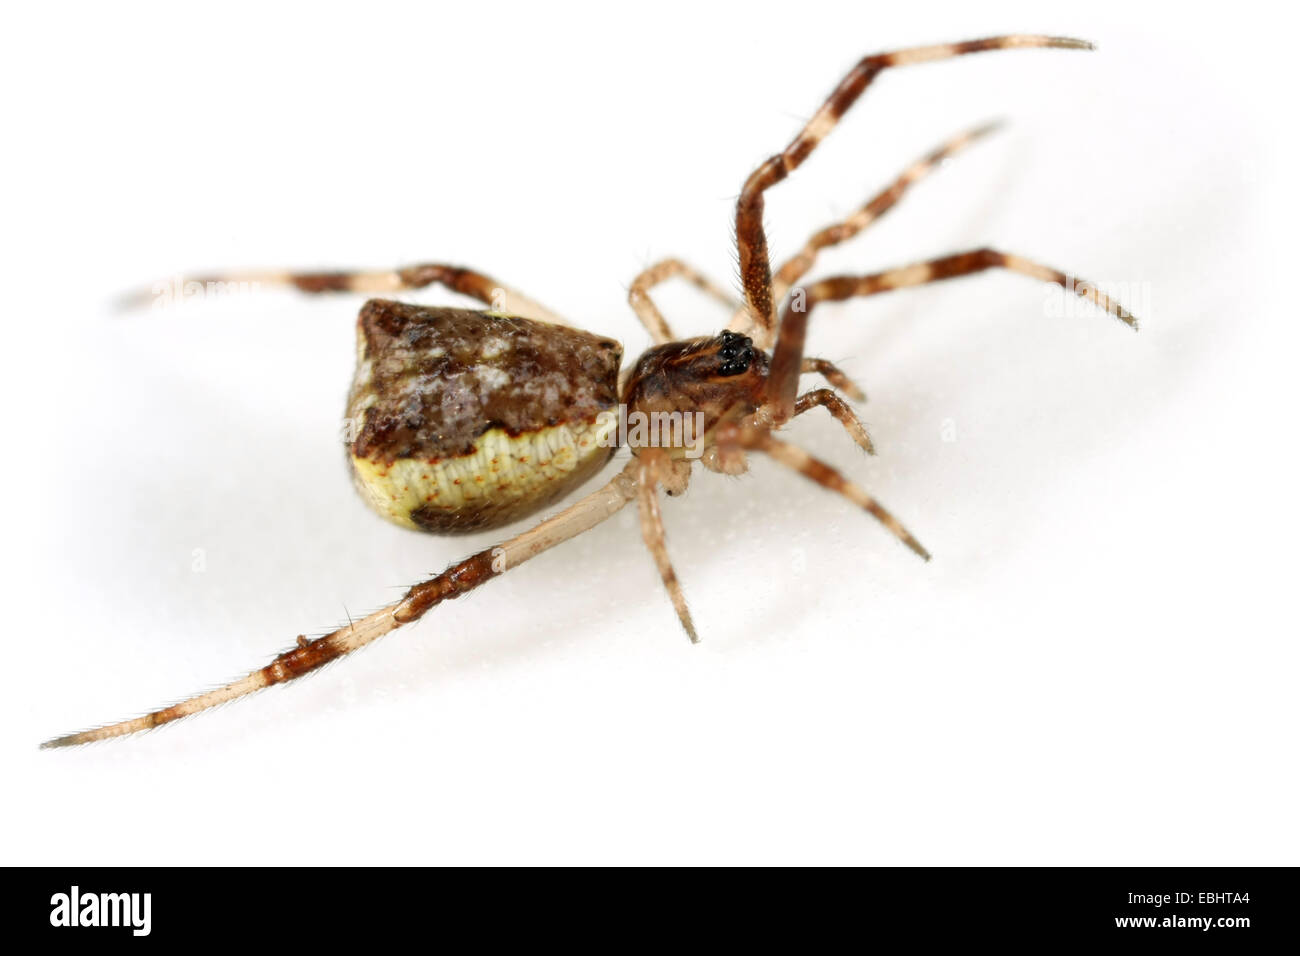 A female comb-footed spider (Episinus angulatus), on white background. Comb-footed spiders are part of the family - Stock Image